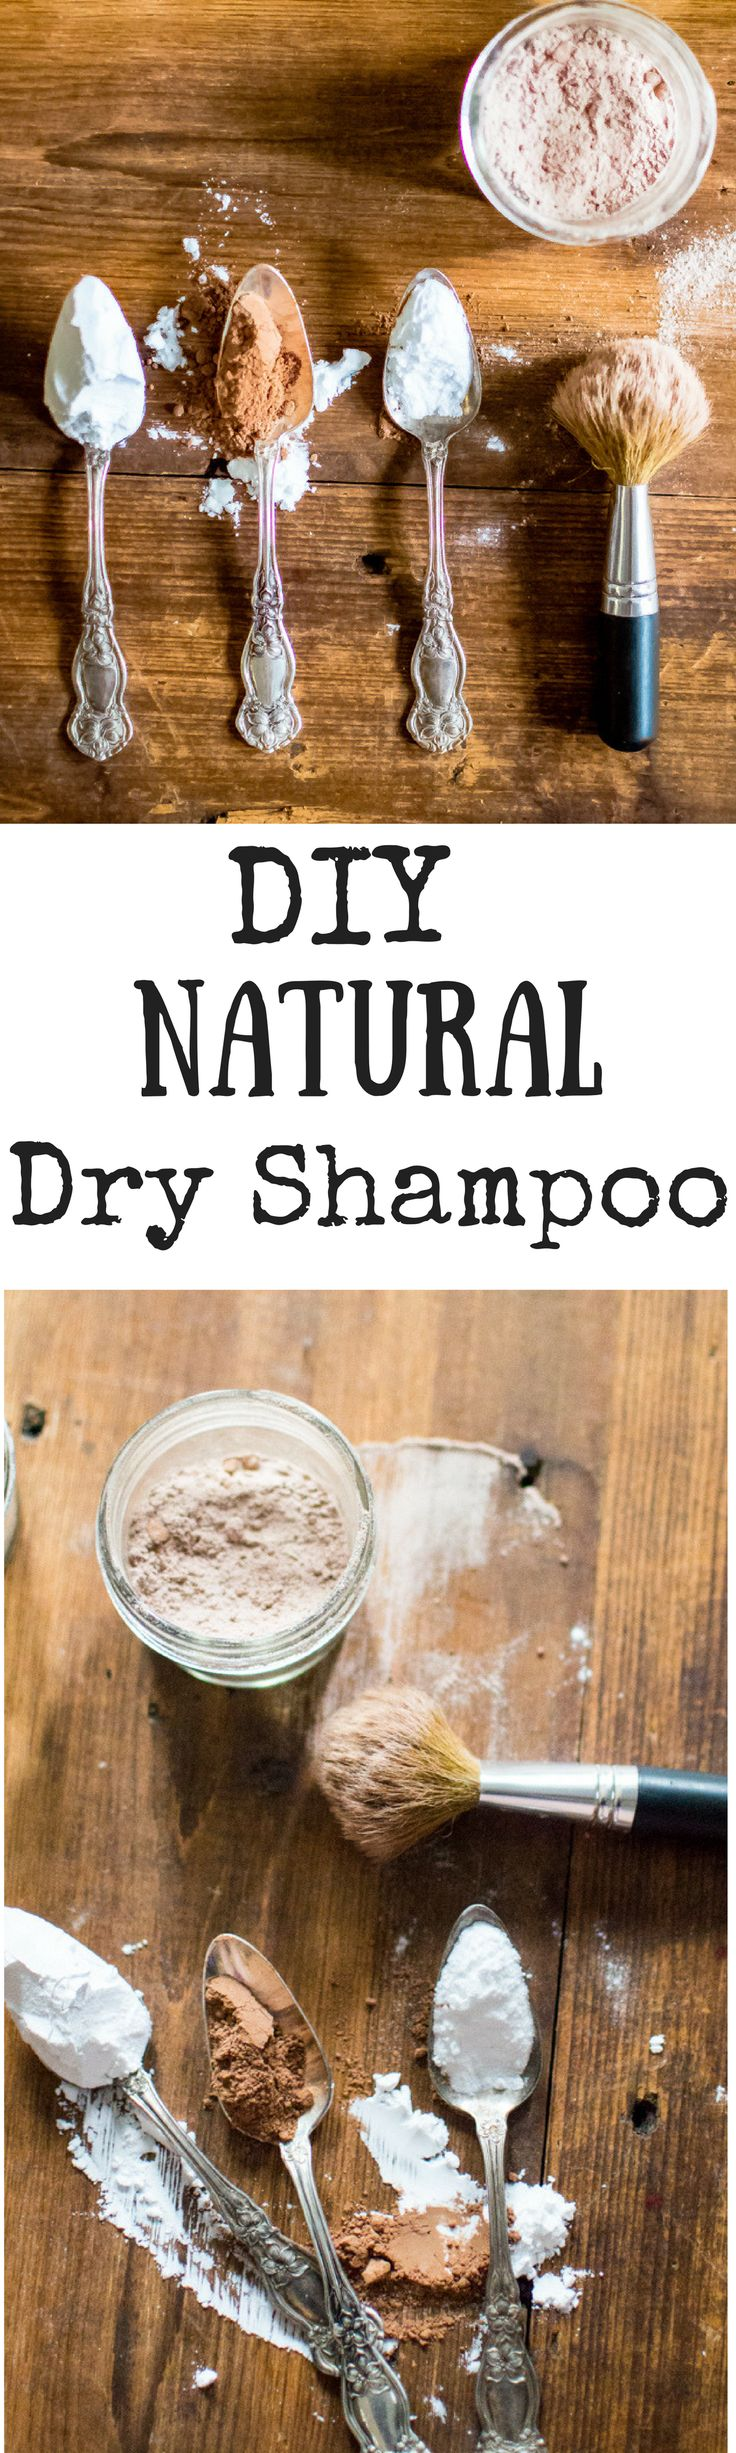 I don't know about you, but next to coffee and leggings, dry shampoo might just be the lifeblood of motherhood for me. And I've cooked up my own personal favorite easy DIY Natural Dry Shampoo recipe...with ingredients (like baking soda) just kicking arou